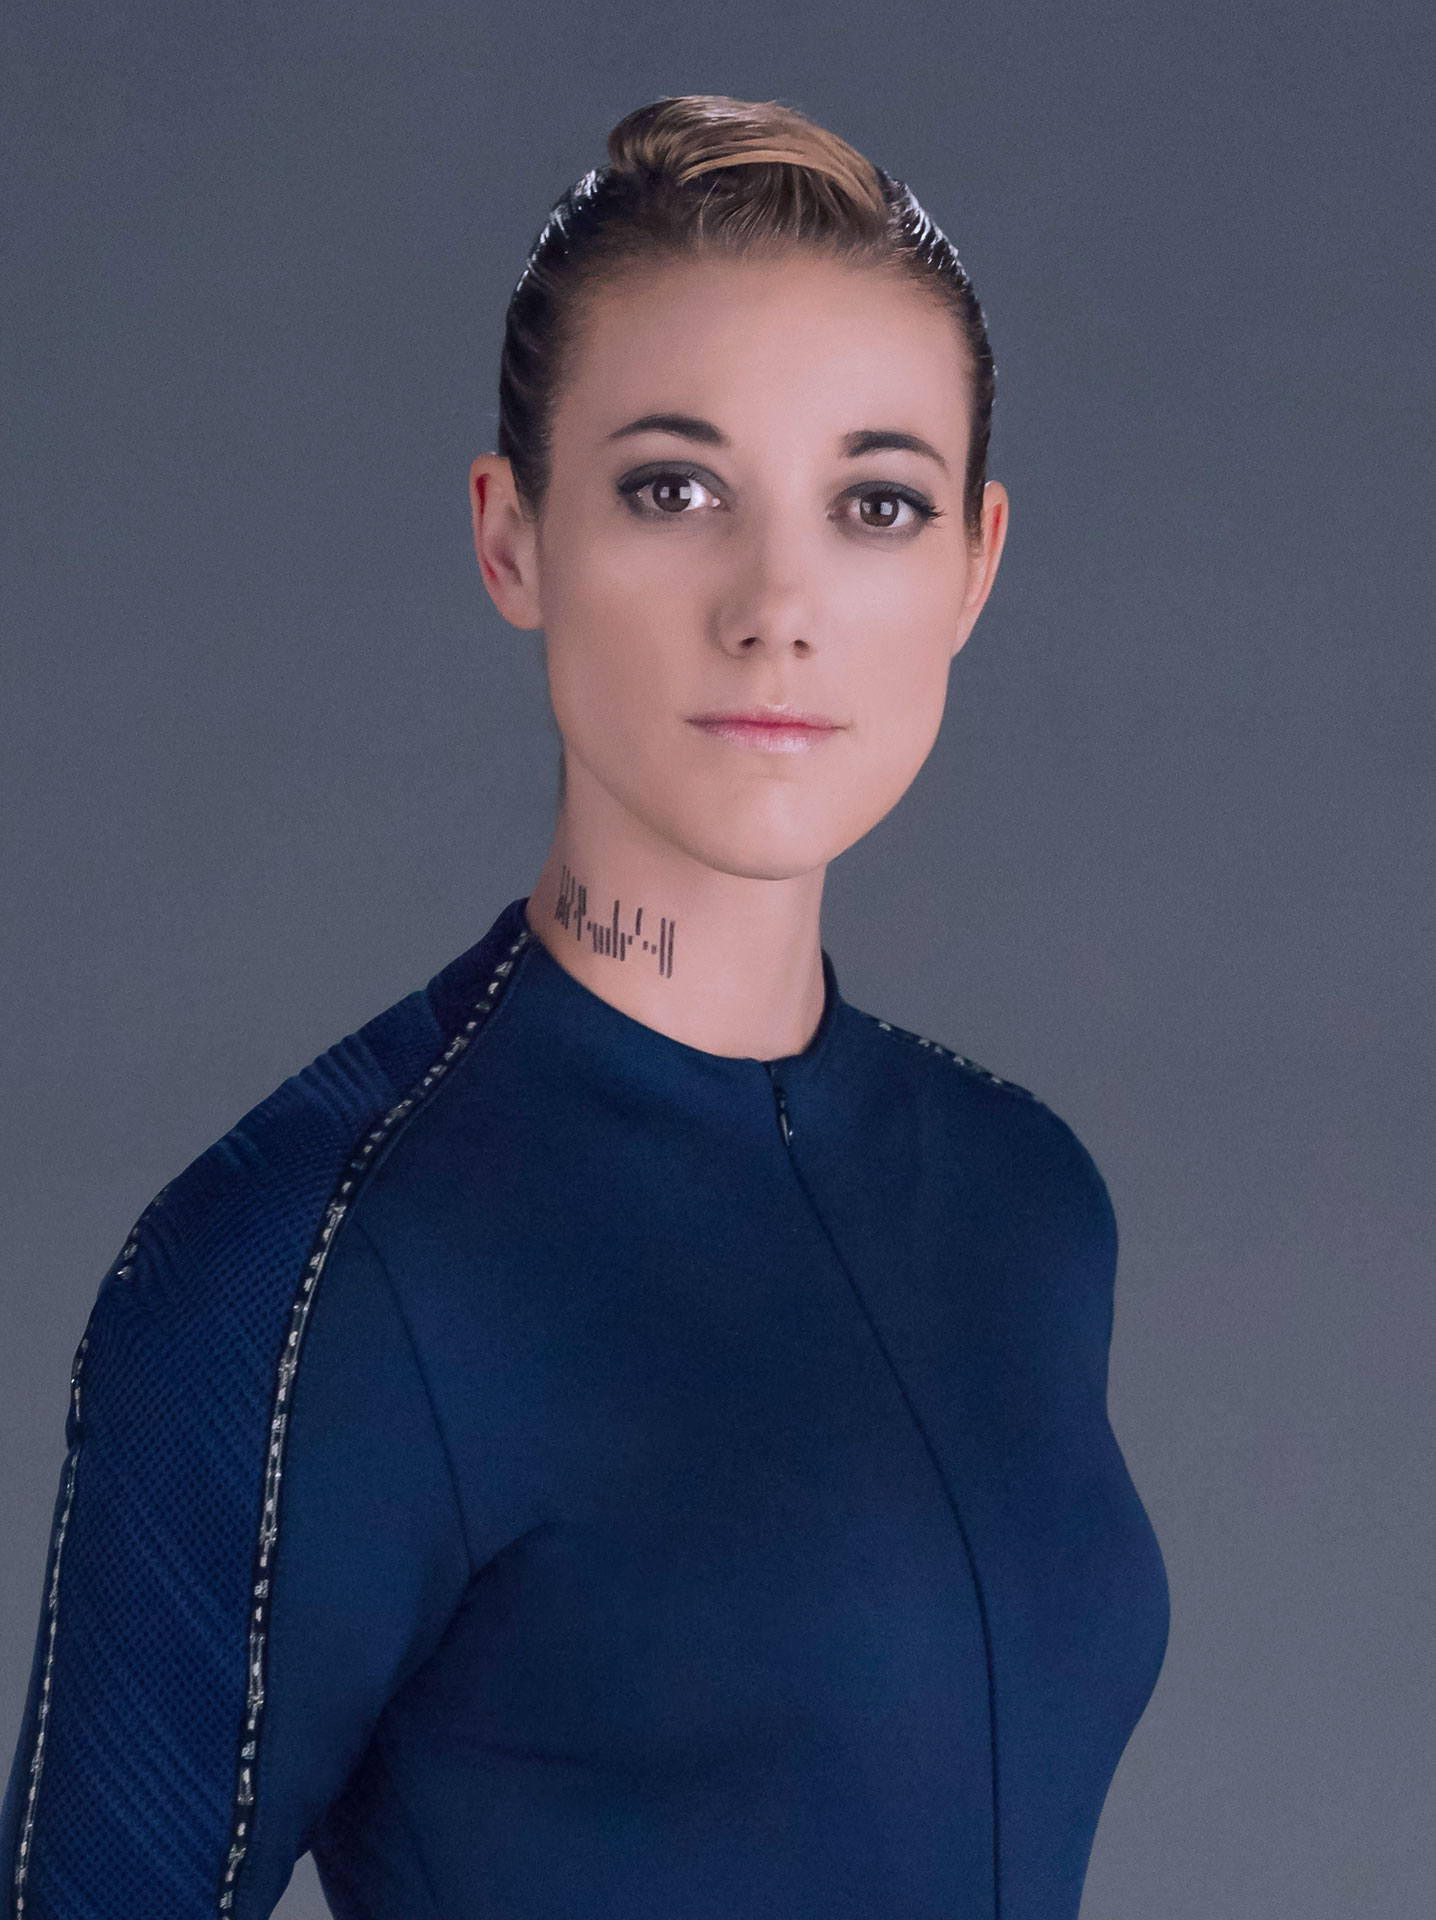 zoie palmer is she married